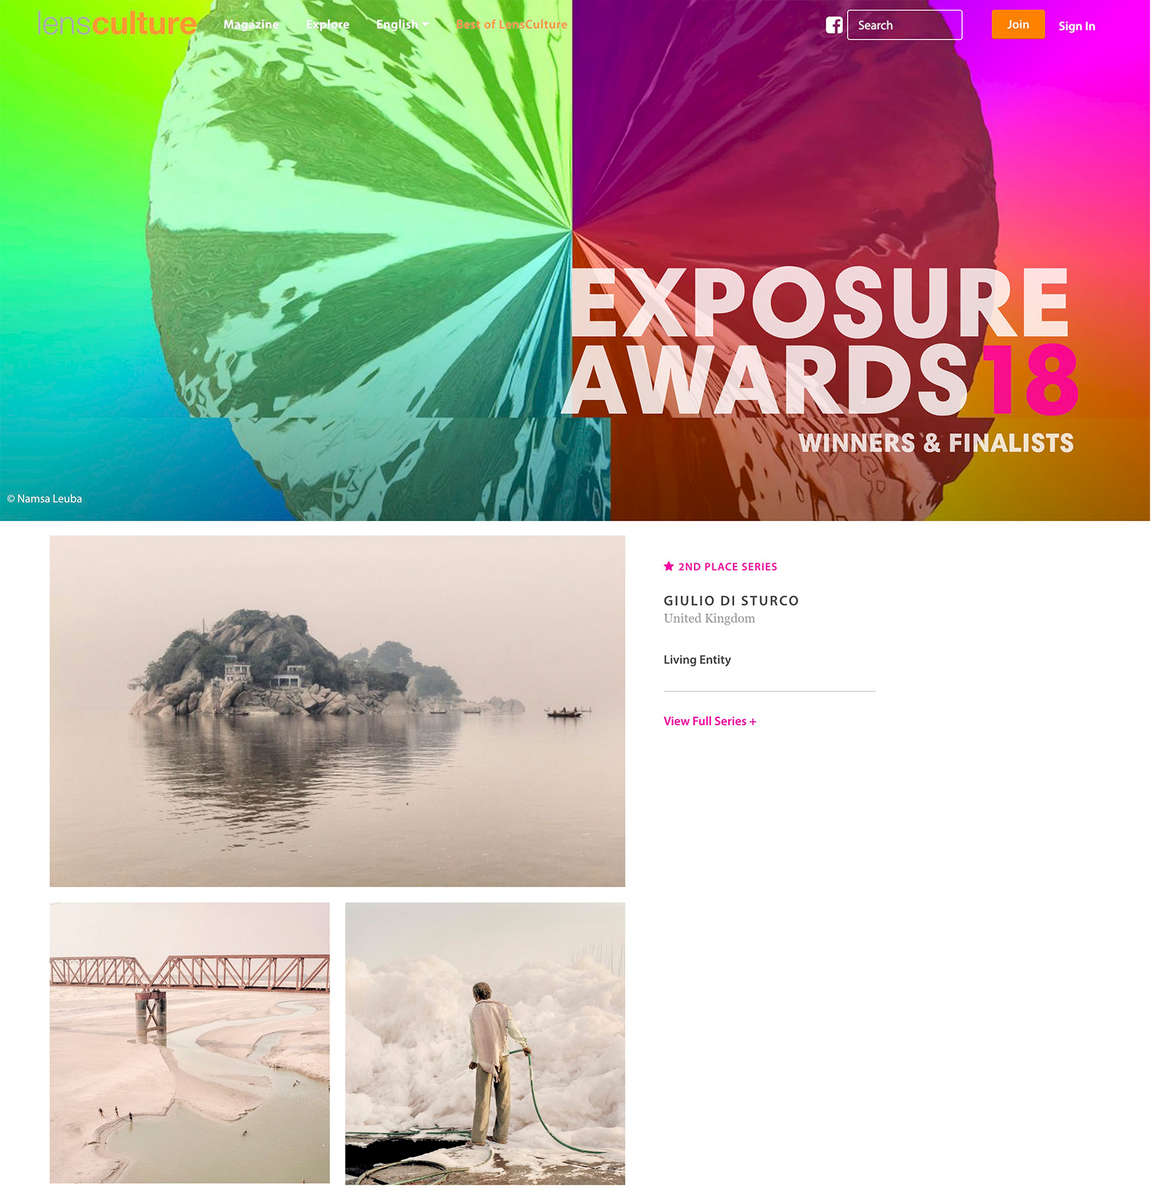 Living EntityGIULIO DI STURCO2nd Place, Series Winner Exposure Awards 2018The Ganges River is a symbol of Indian civilization and spirituality. It is a source of poetry and legend. It is older than Athens or Jerusalem. For centuries people have journeyed here to find the heart of Hindu culture in India. And now it is on the brink of an ecological crisis.The river goddess Ganga once flowed wild and free, ripping through the Indian landscape with vigor and might, beginning with the roaring, icy waters in the Himalayas and running down its murky end in the Bay of Bengal.For more than seven years, I documented the lives of the people who live along the river Ganges, witnessing firsthand the devastating effects of climate change, industrialization, and urbanization